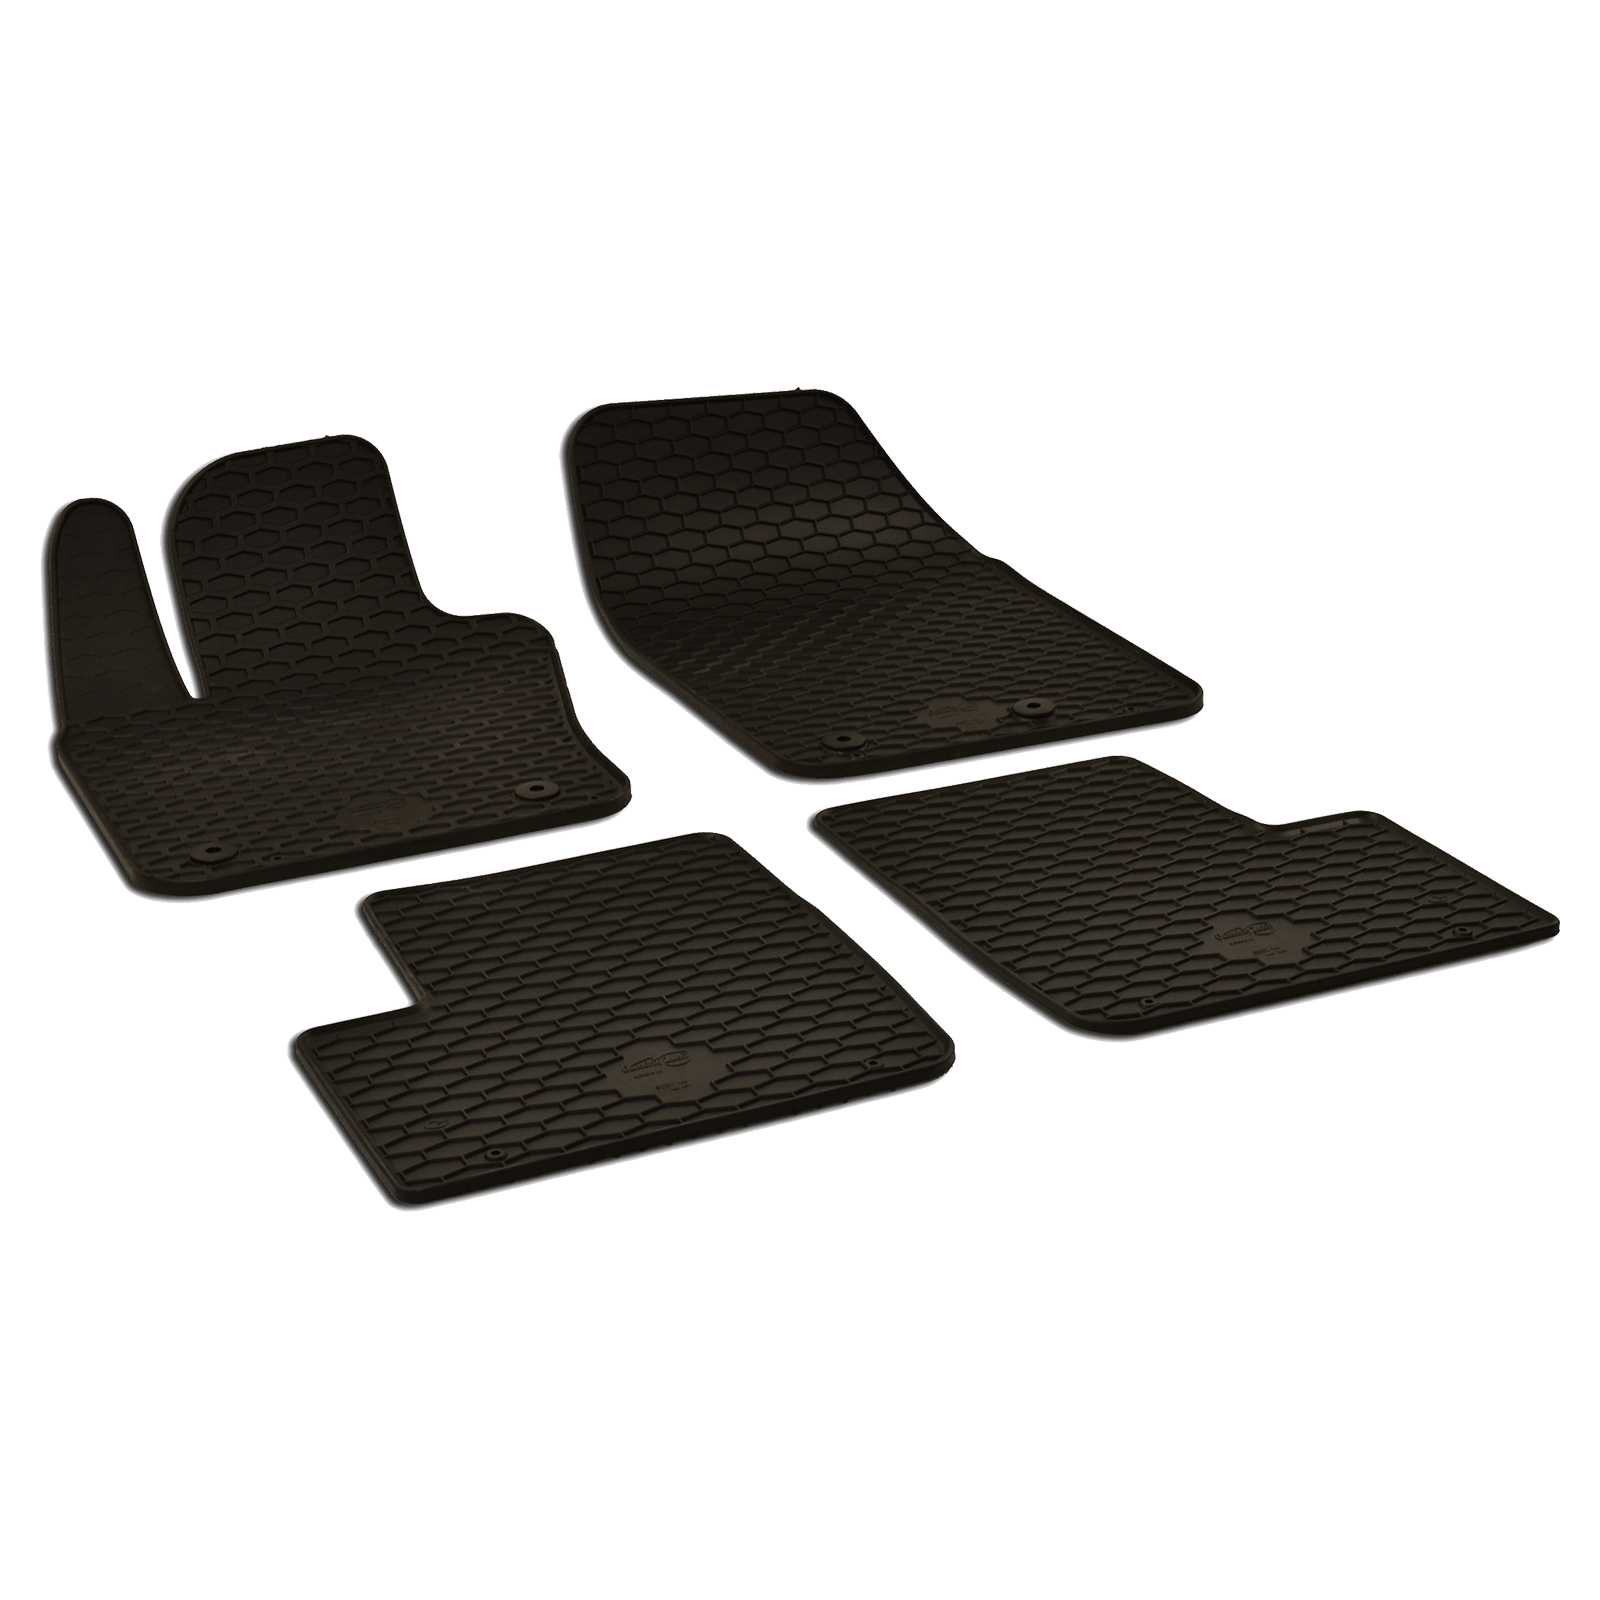 tapis de sol en caoutchouc noir pour fiat 500x bj. Black Bedroom Furniture Sets. Home Design Ideas